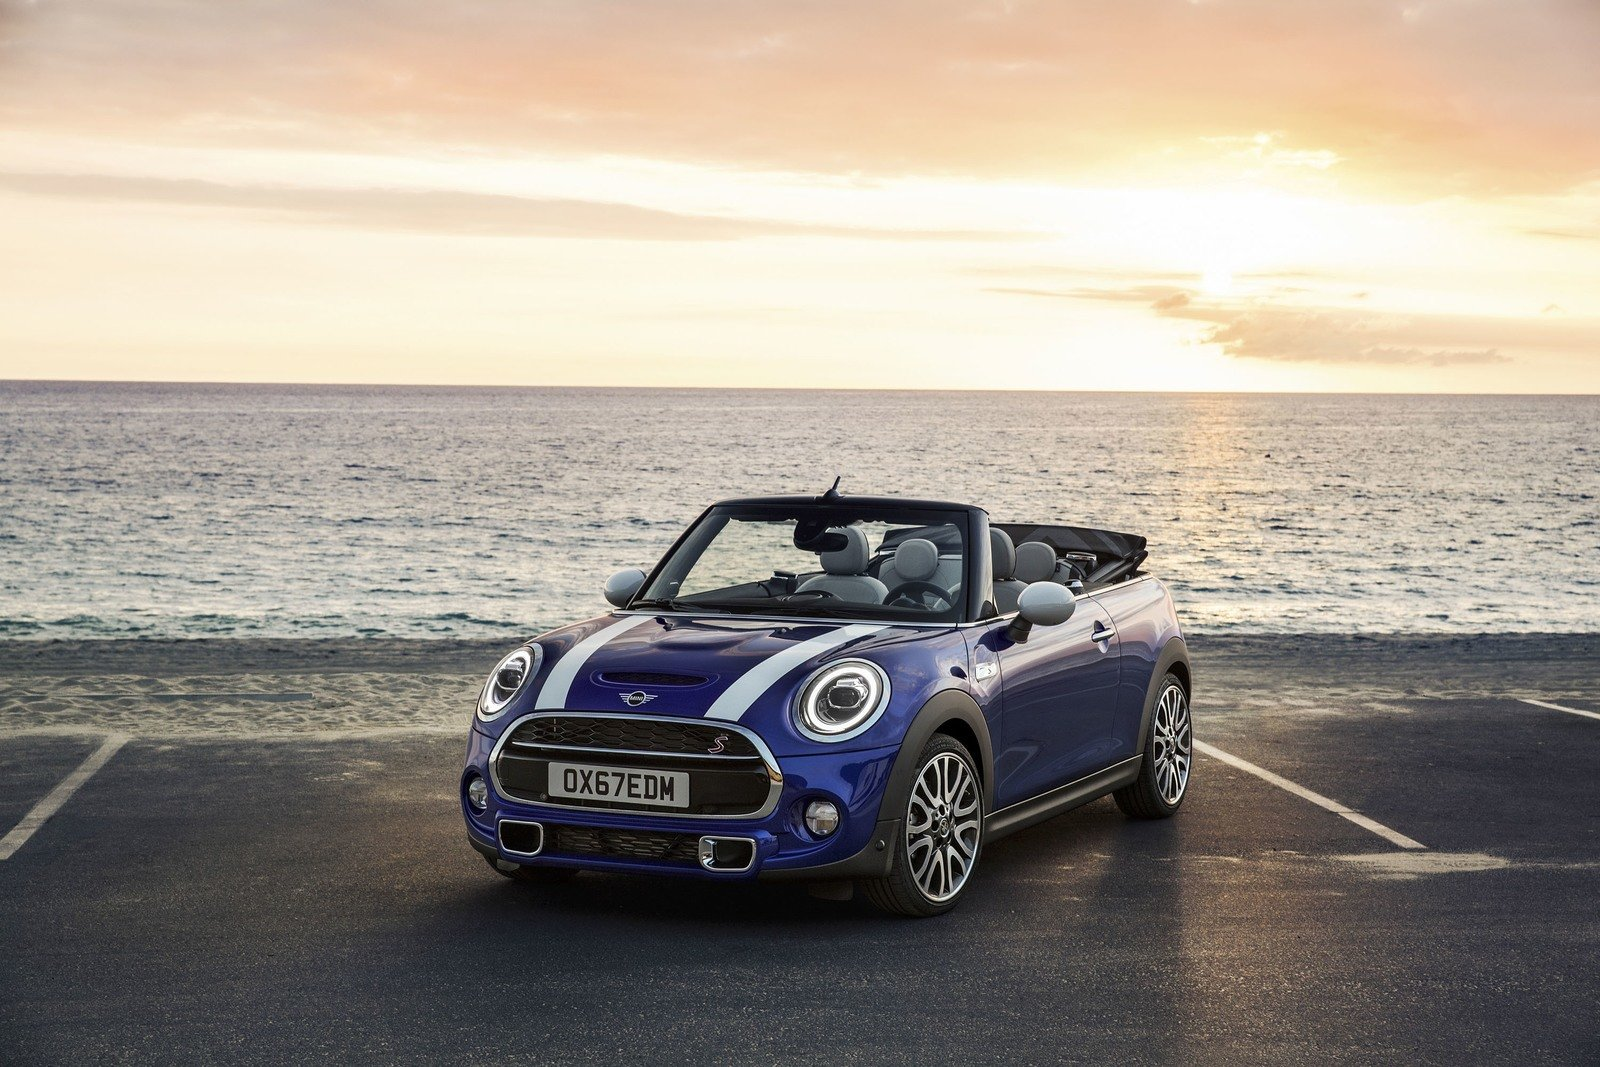 All White Cars Wallpaper Wallpaper Of The Day 2019 Mini Cooper Cabriolet Top Speed